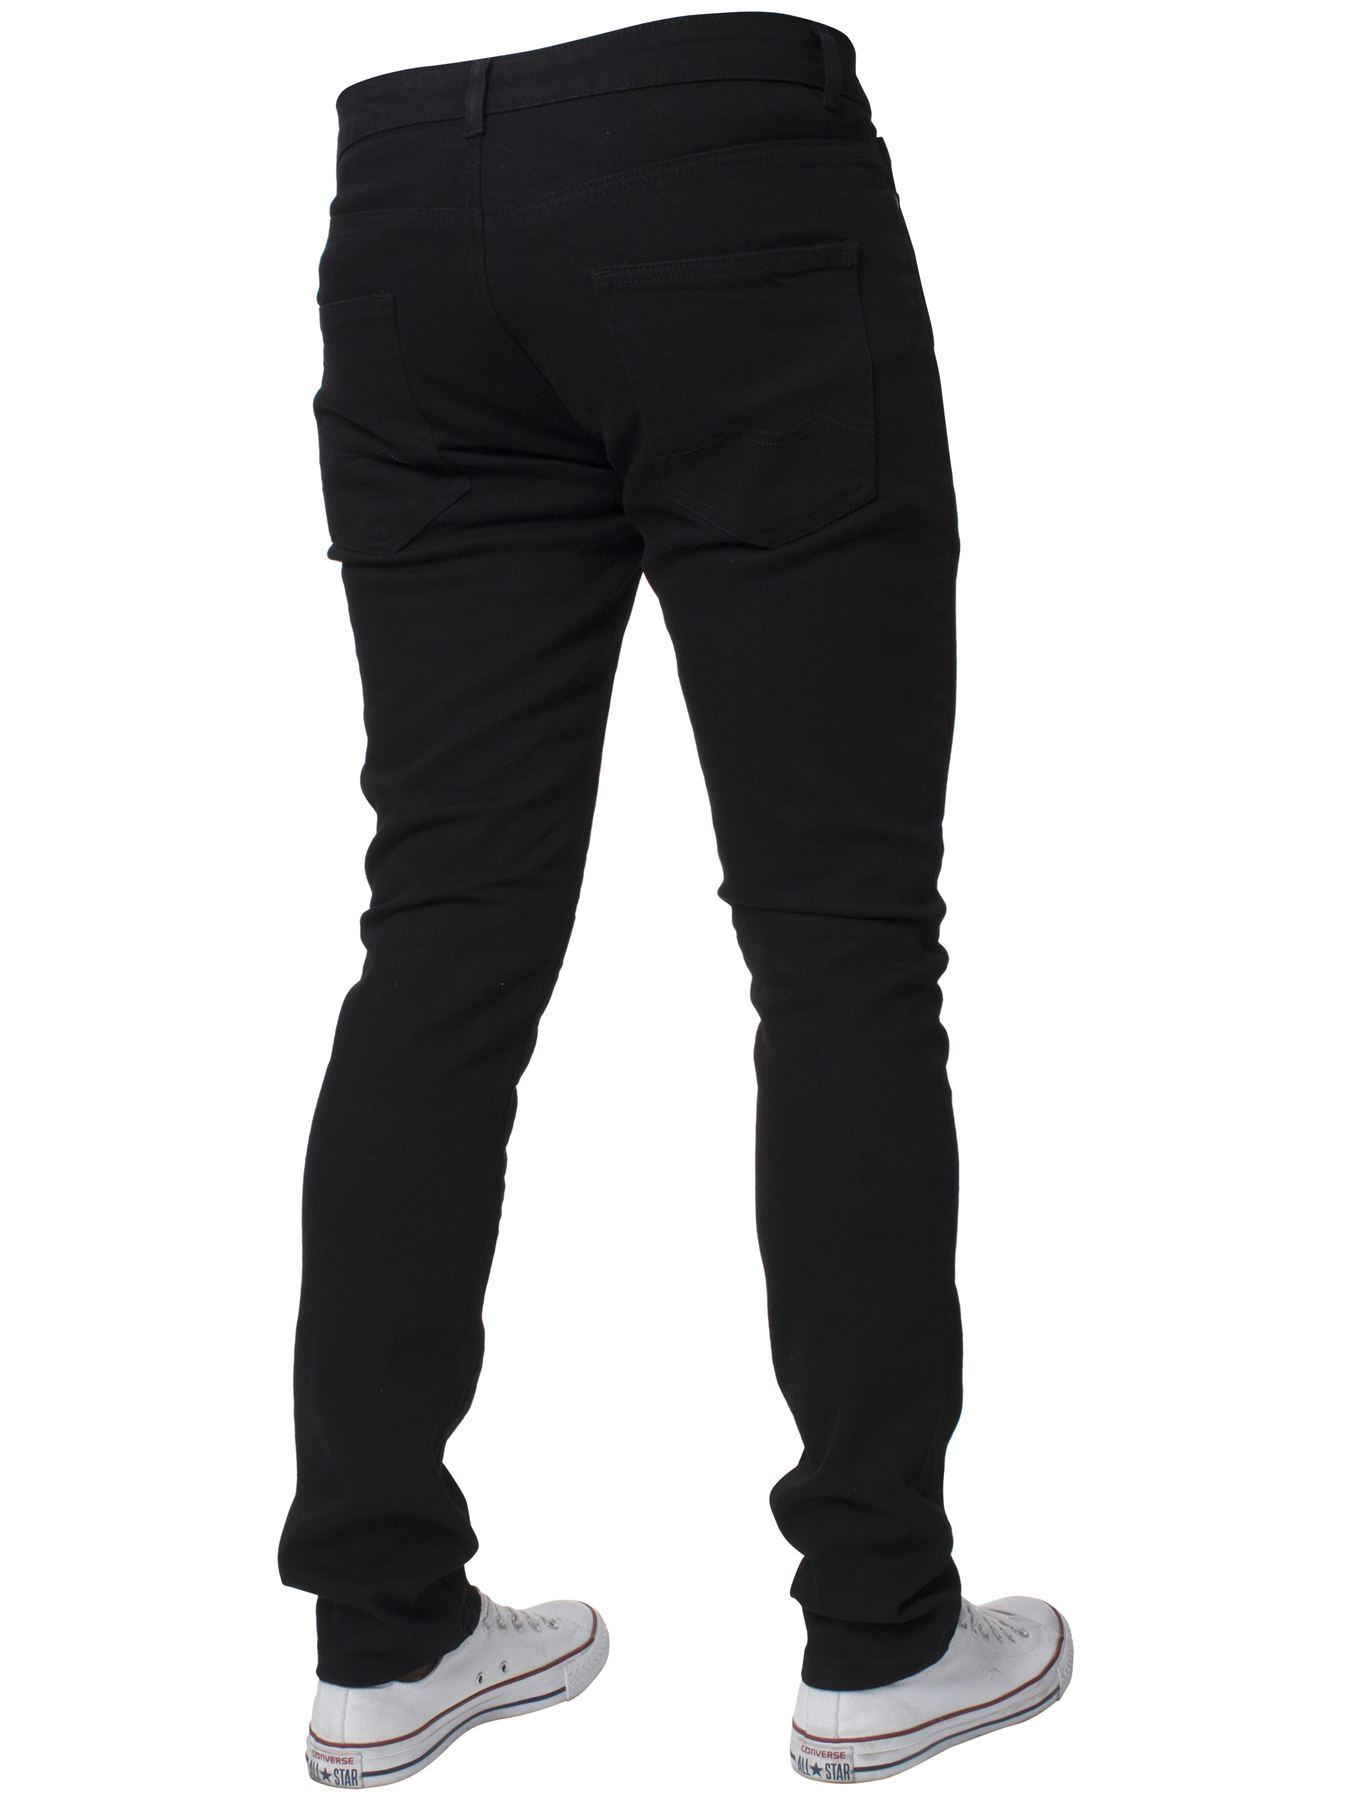 Kruze-Mens-Skinny-Stretch-Flex-Denim-Jeans-Slim-Fit-Trouser-Pants-Big-King-Sizes thumbnail 5